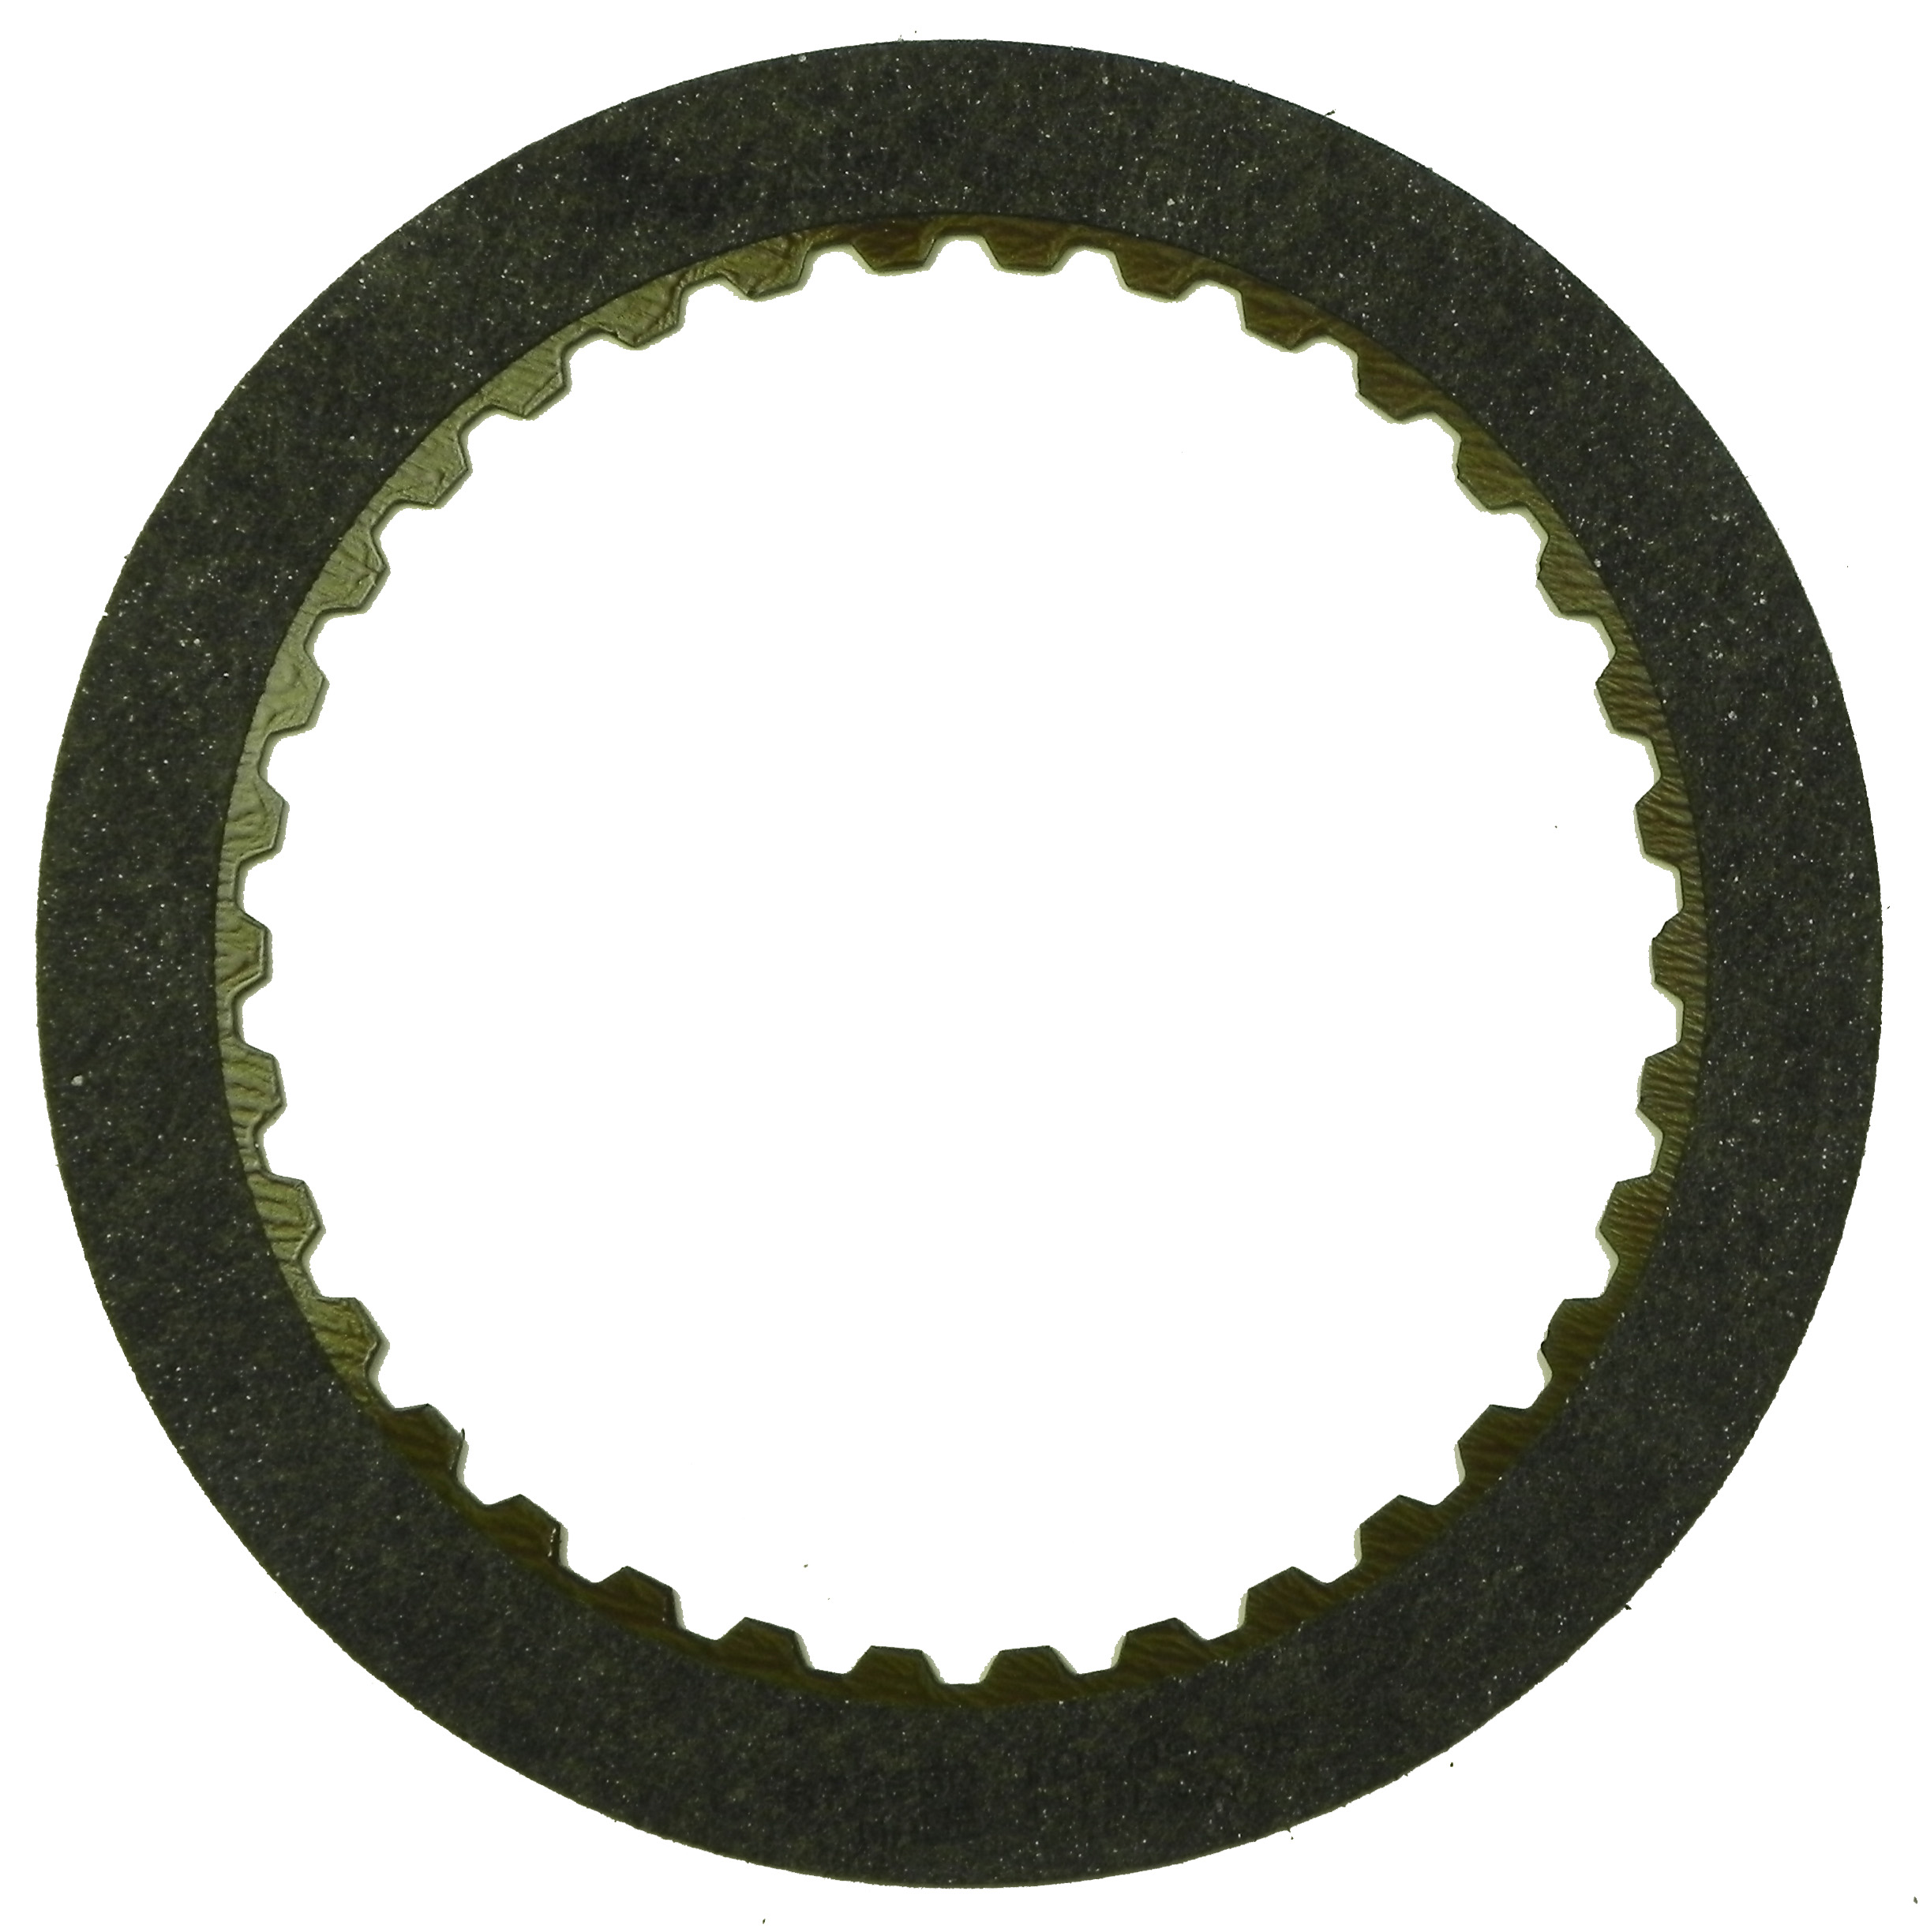 R572650 | 1999-2007 Friction Clutch Plate High Energy C3 Underdrive (Waved) High Energy AW55-50SN